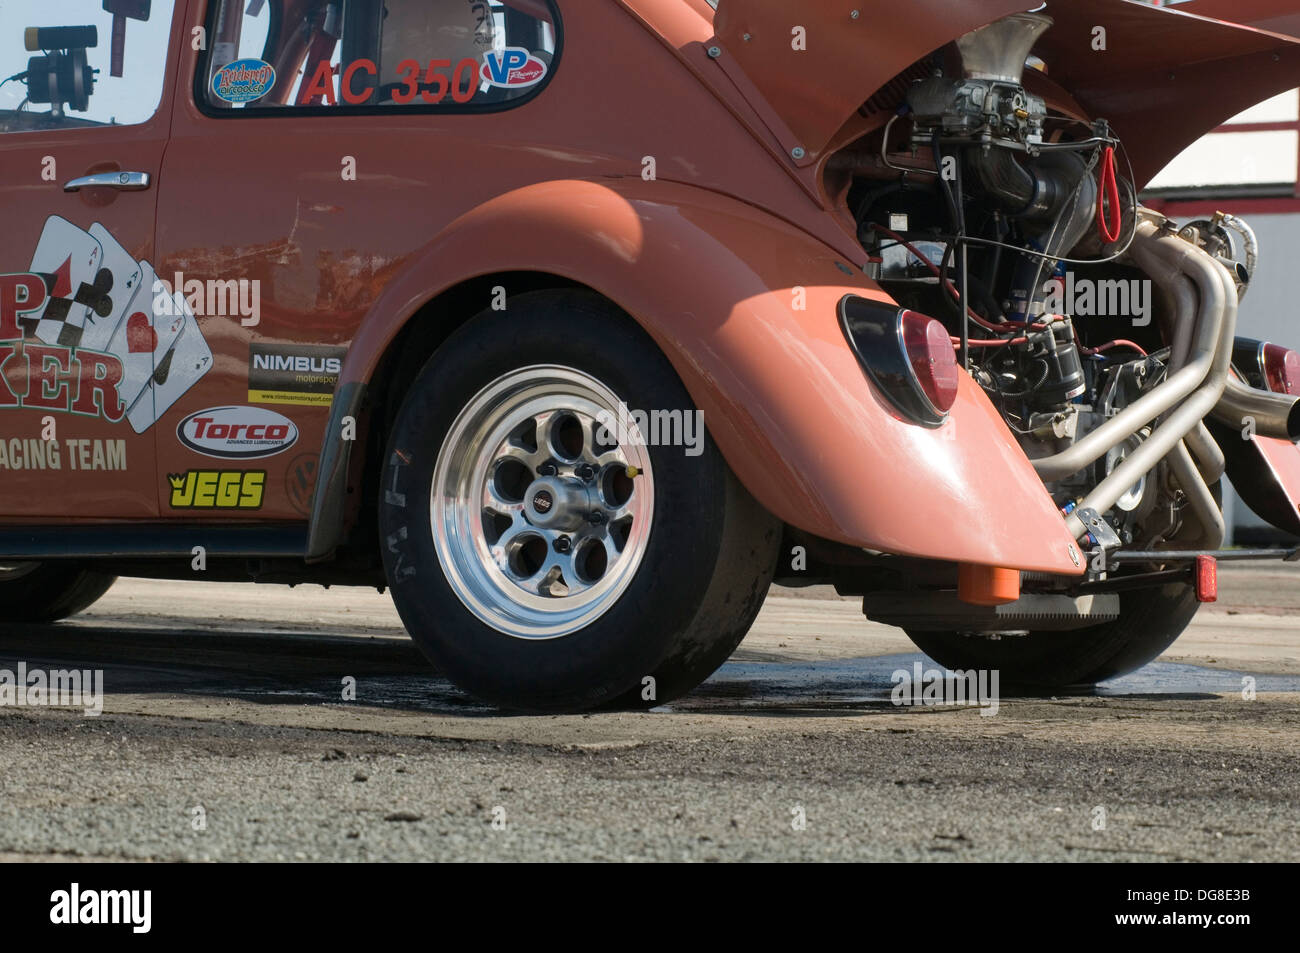 vw drag car beetle dragster dragsters race racing volkswagen rear engined turbo turbocharged flat four 4 strip track acceleratio - Stock Image